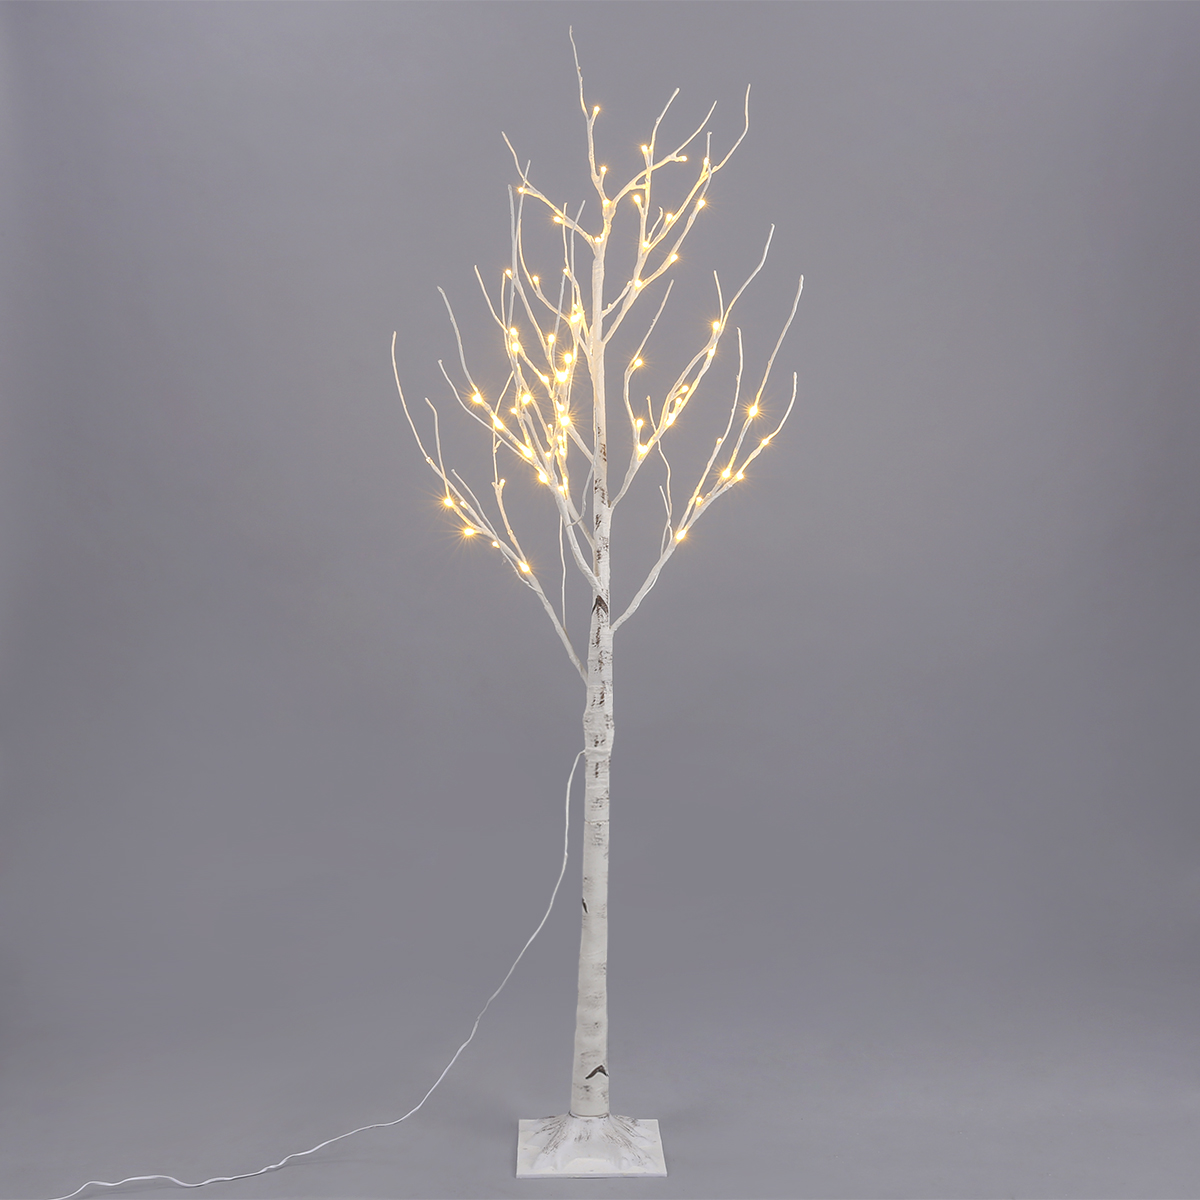 EXCELVAN 1.5M/5FT 72LED Silver Birch Twig Tree Light, Decorative Flexible  Creative Warm White Light, White Branches, Perfect for ...